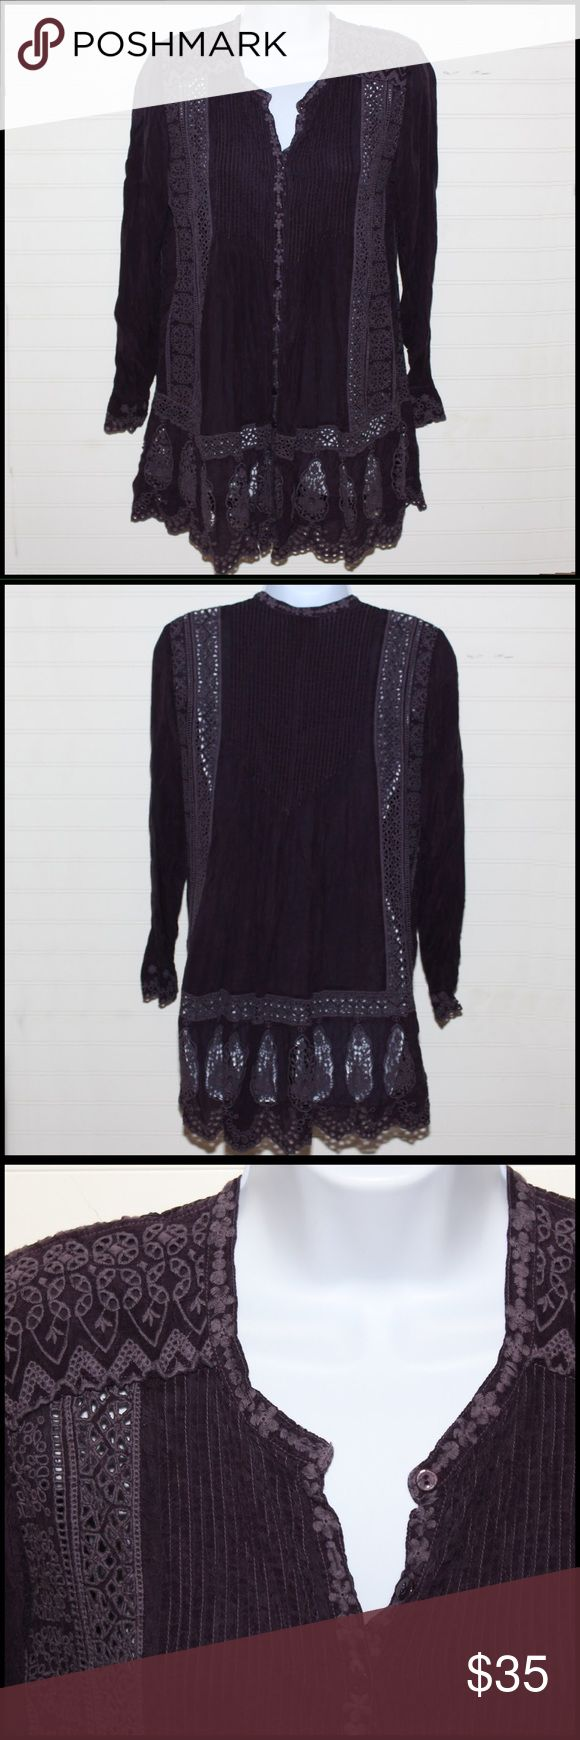 Johnny Was beautiful detailed tunic top in Plum One of my favorite brands! Love the detailing on this silk top. Pretty plum color perfect length for leggings. Johnny Was Tops Tunics